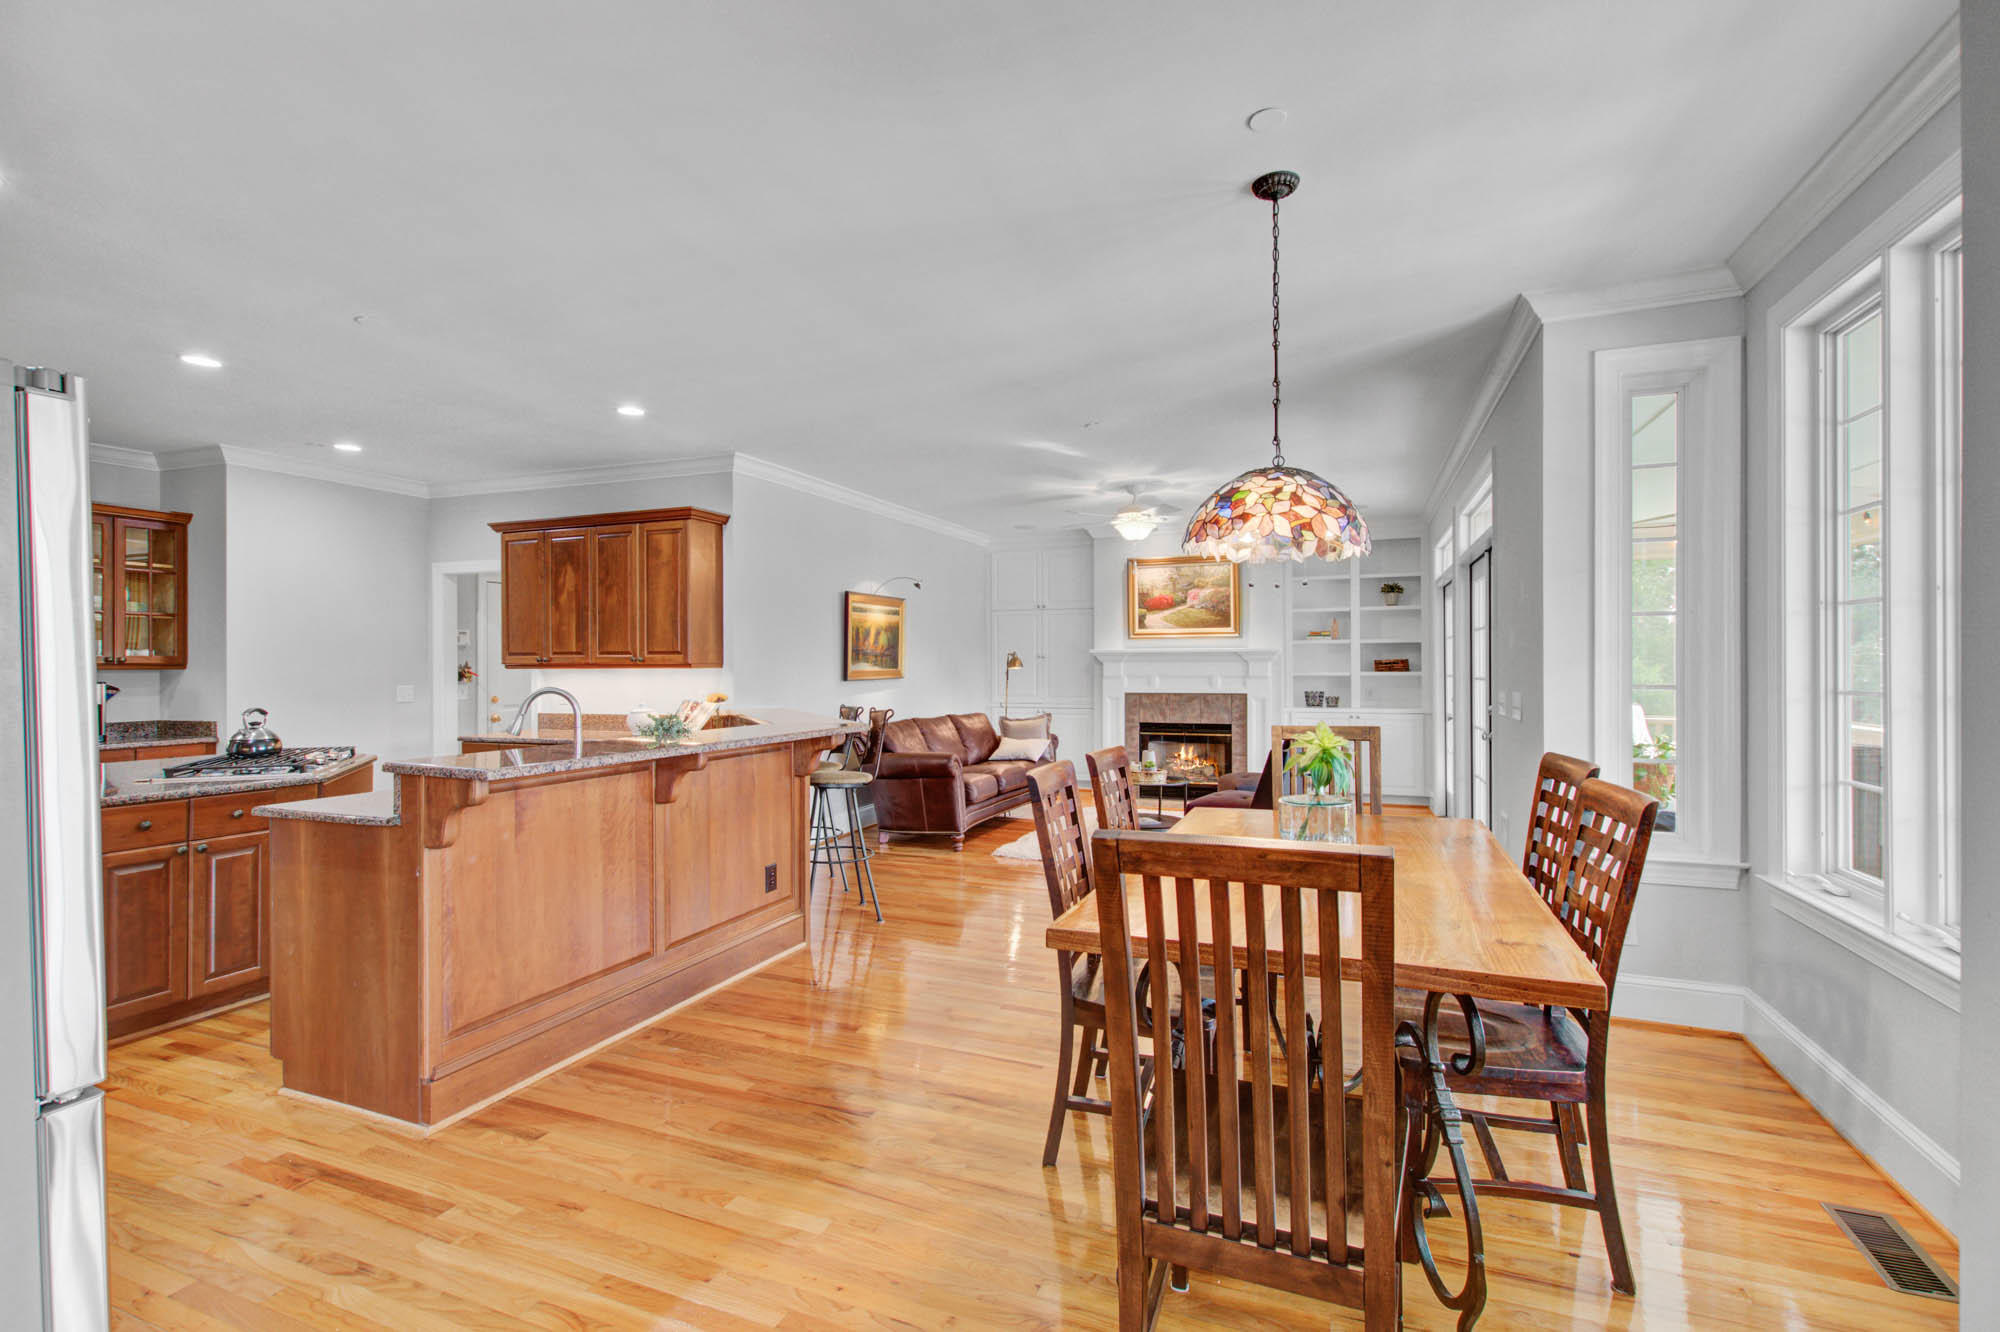 Dunes West Homes For Sale - 2069 Shell Ring, Mount Pleasant, SC - 50